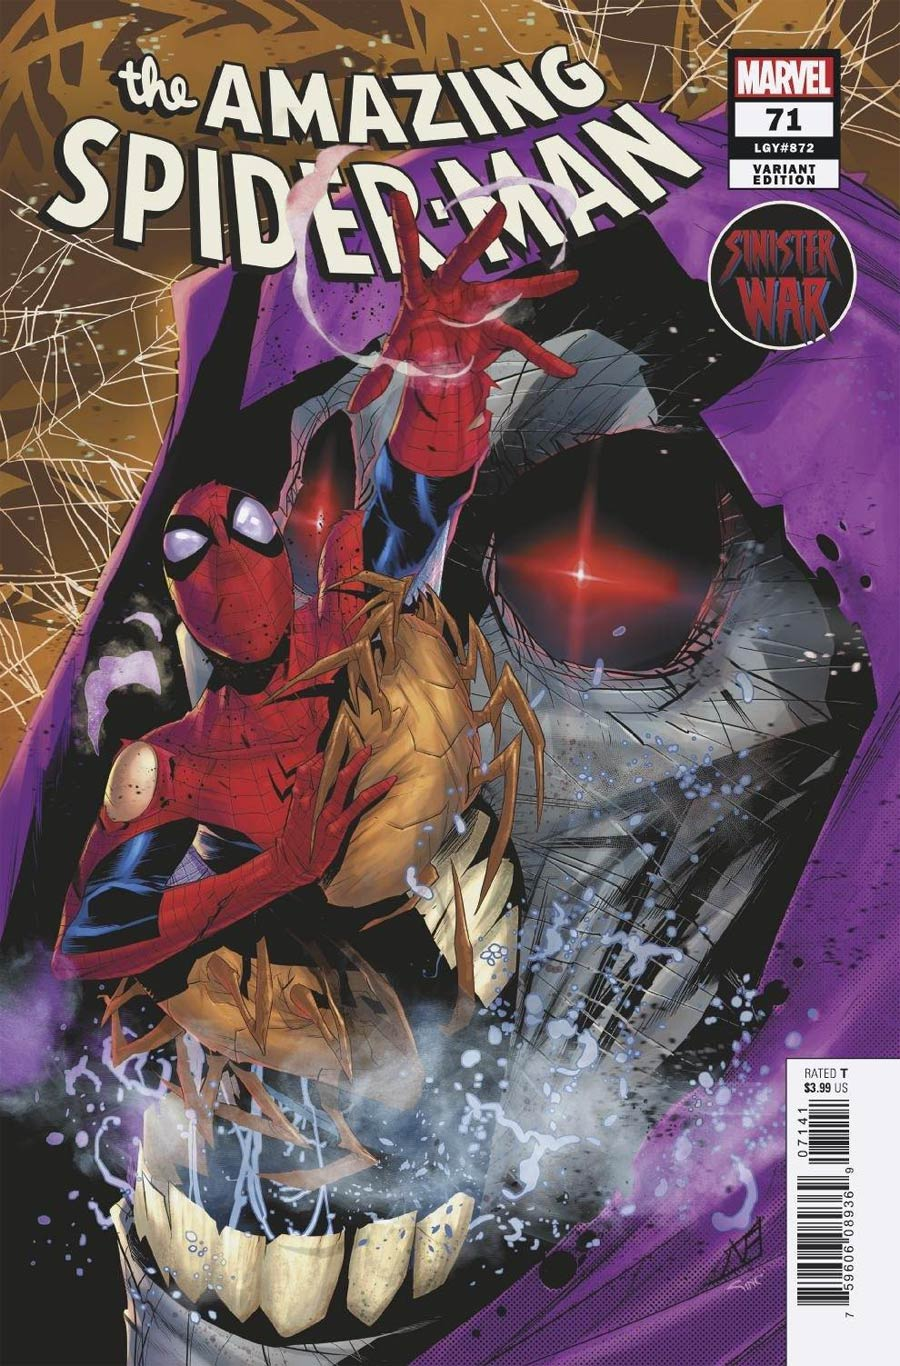 Amazing Spider-Man Vol 5 #71 Cover D Incentive Federico Vincentini Variant Cover (Sinister War Tie-In)